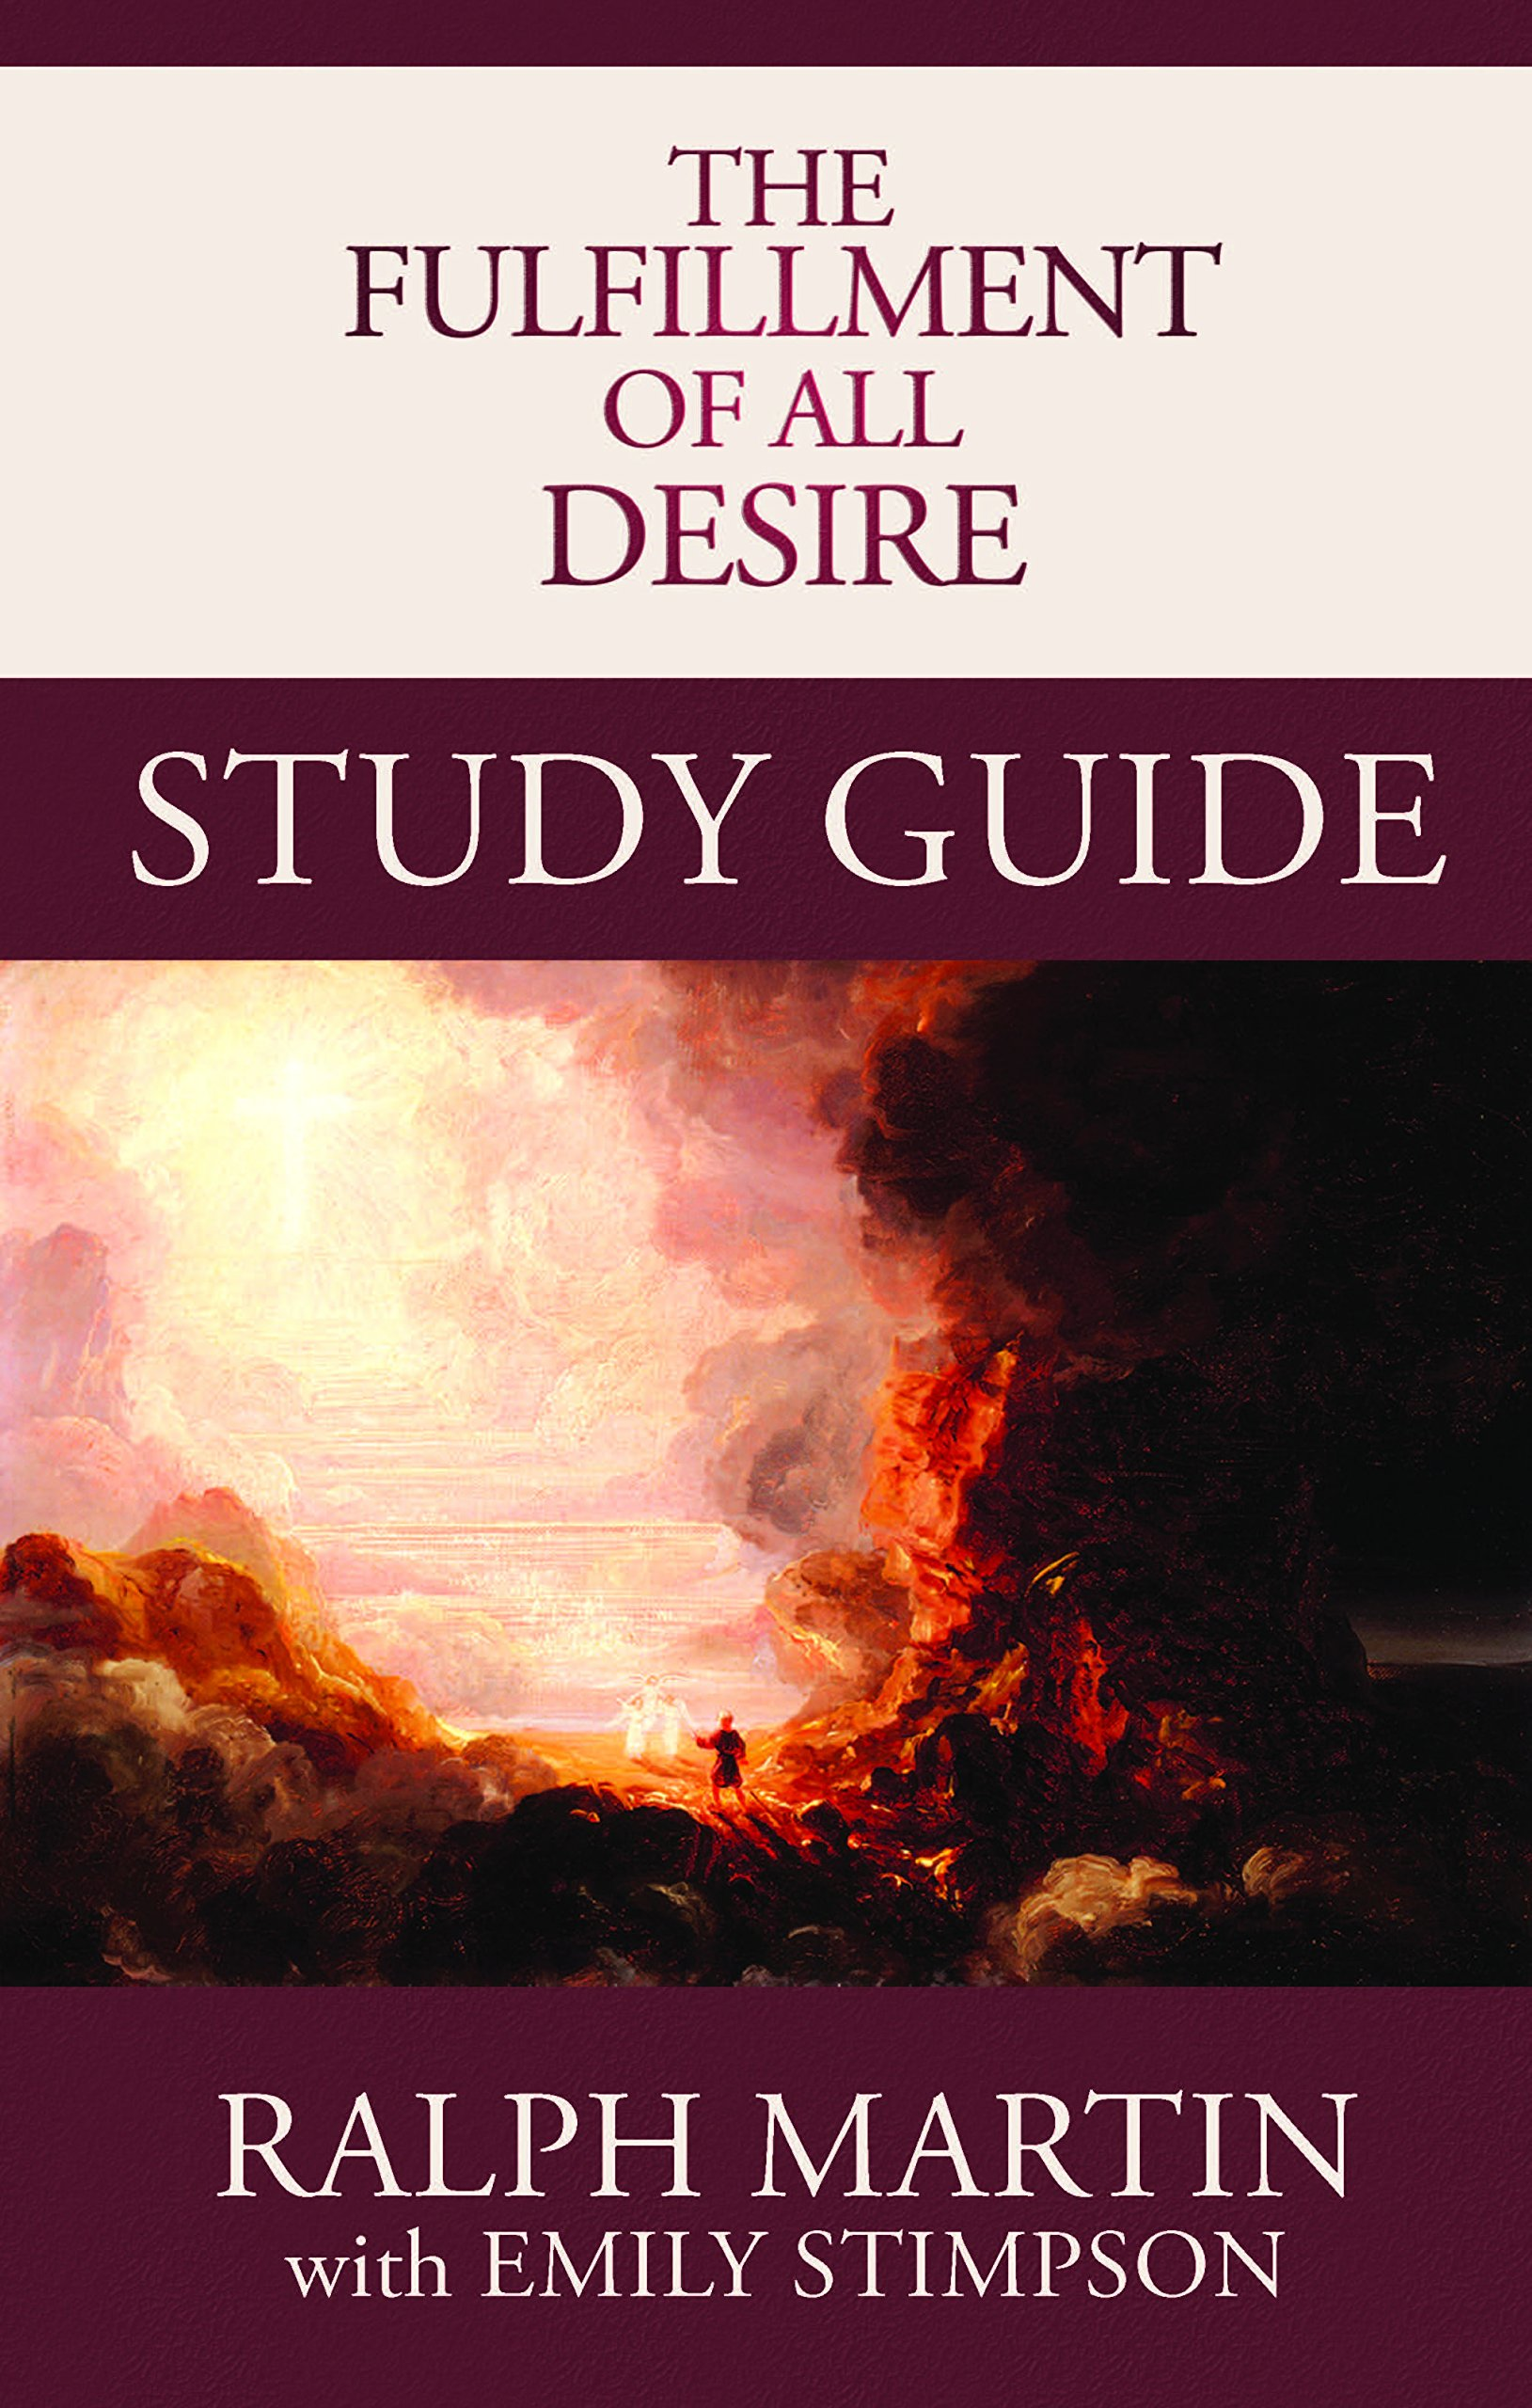 Fulfillment All Desire Study Guide product image